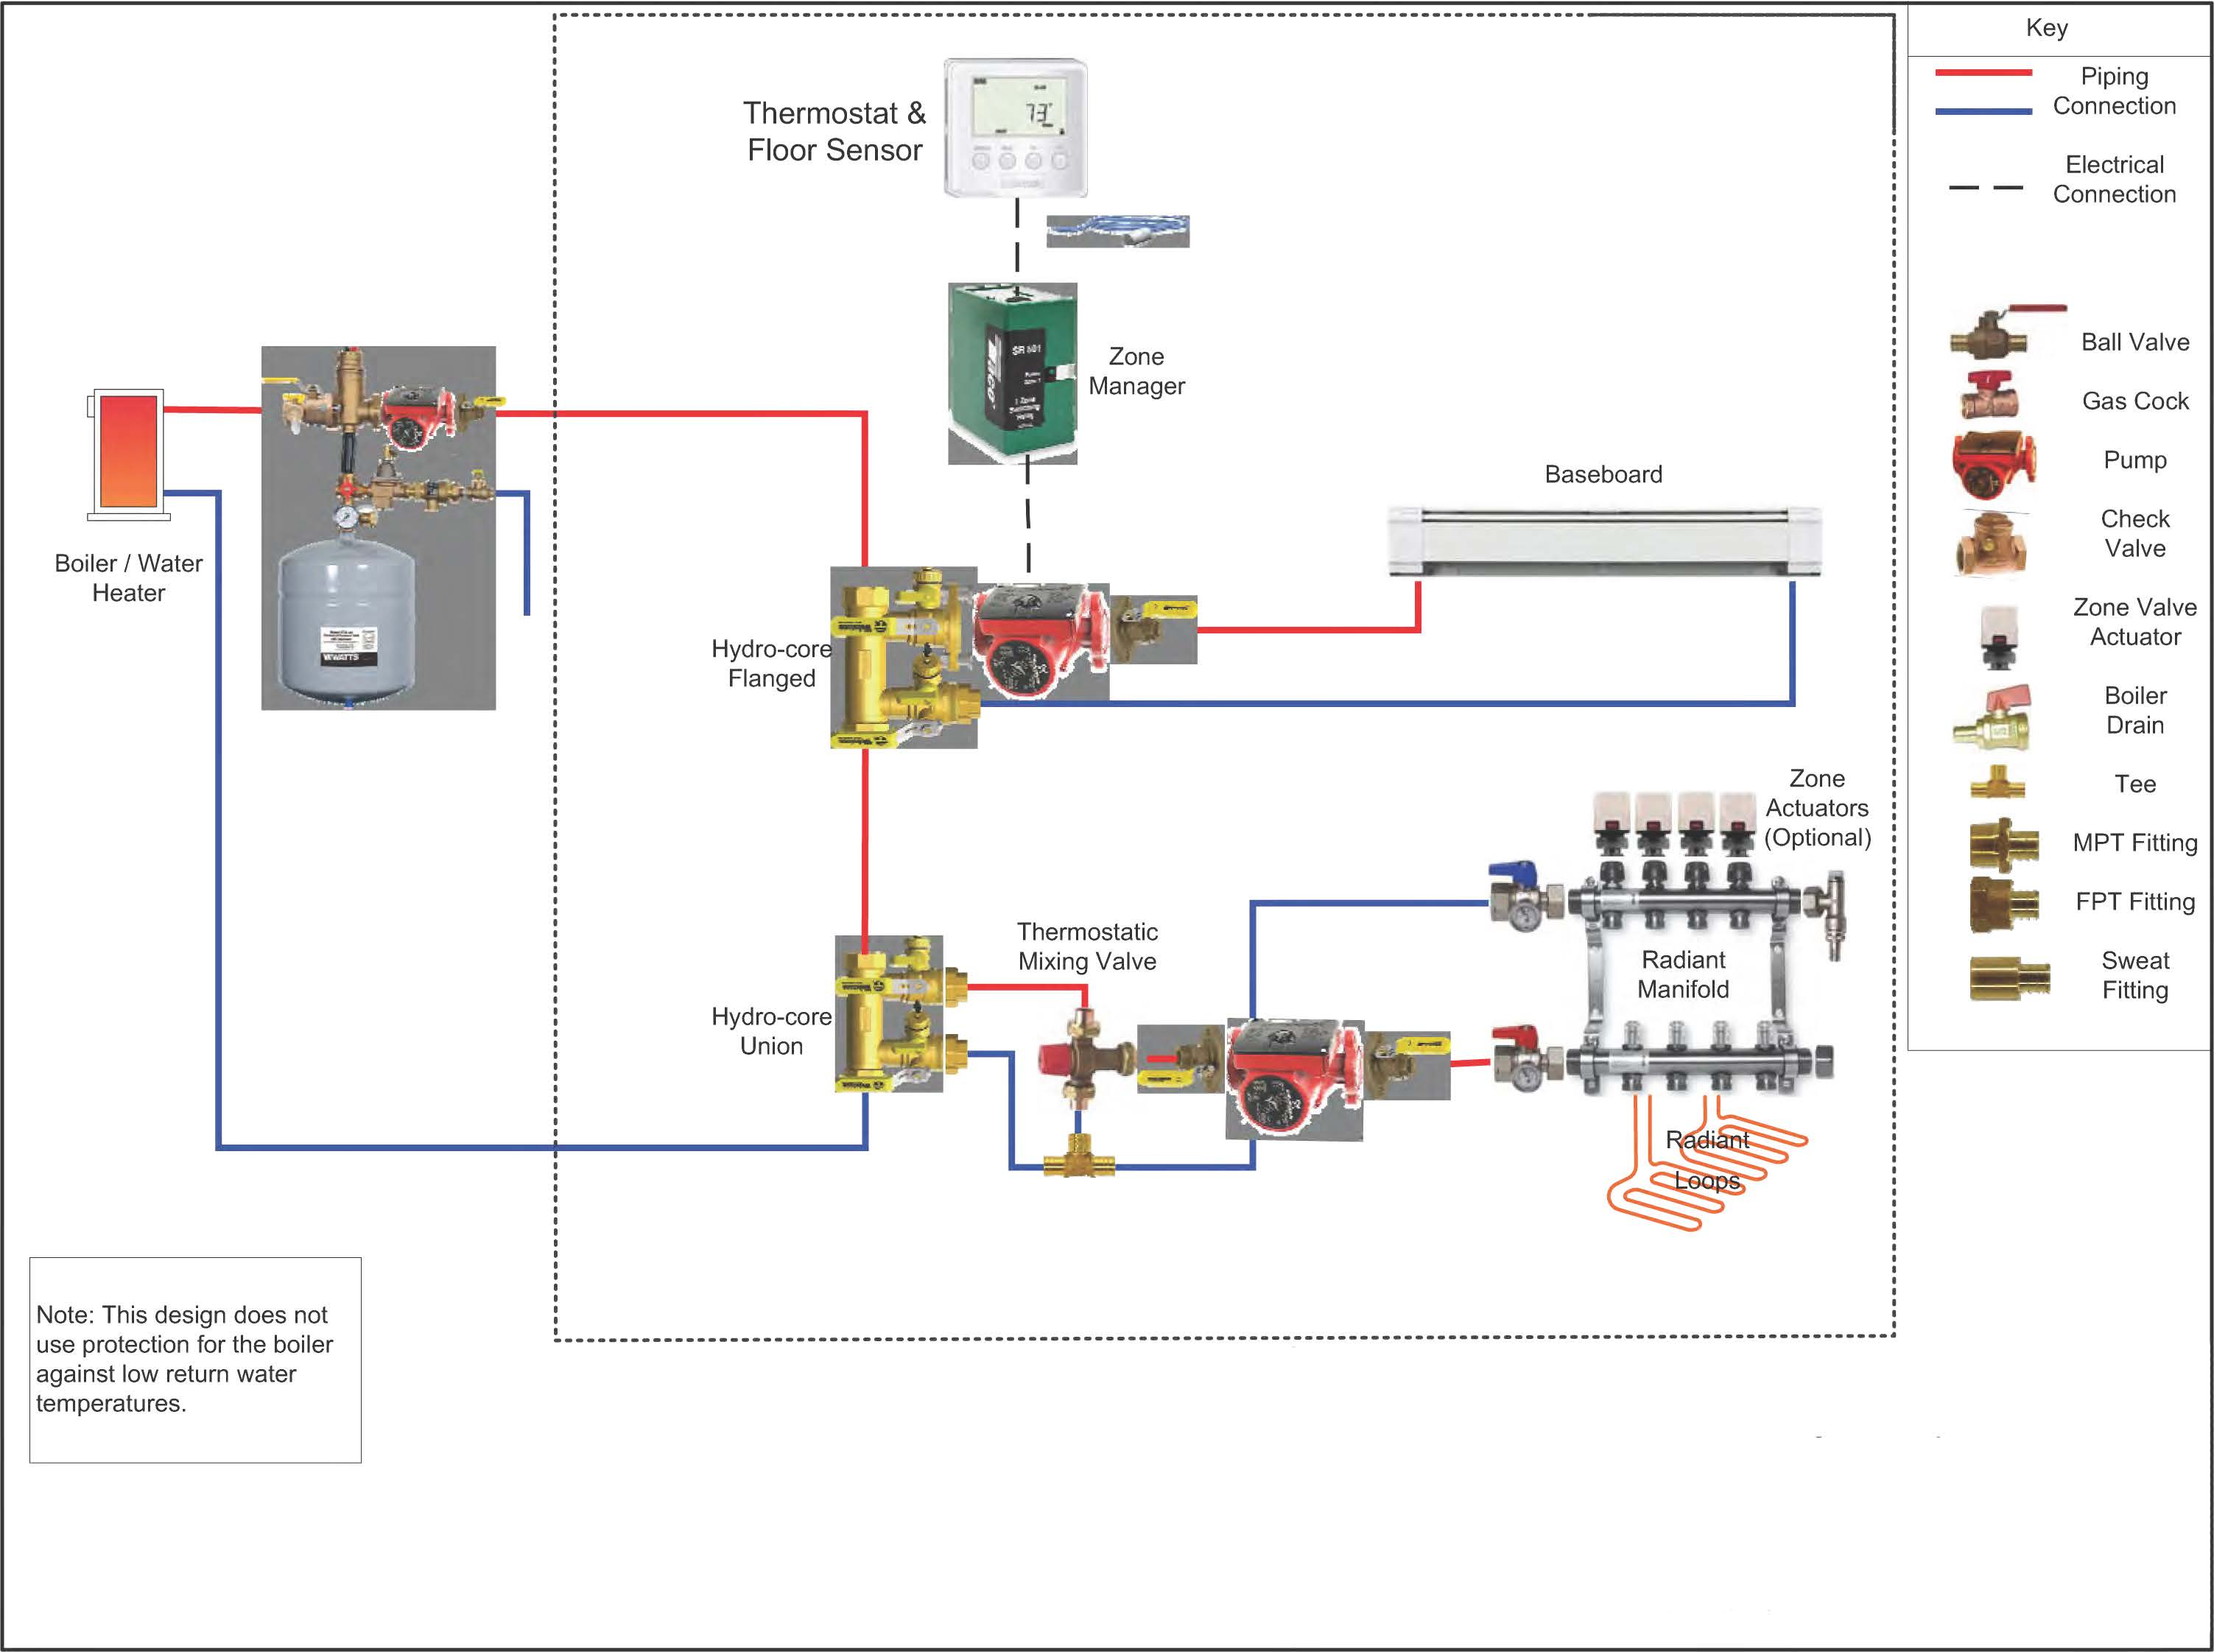 Excellent Boiler Diagram Tiny Electric Guitar Jack Wiring Clean Gibson Pickup Wiring Colors 2 Wire Humbucker Old Wiring Diagram For Gas Furnace OrangeIbanez Btb 406 New Boiler Radiant \u0026 Baseboard Taco Controls Question HELP ..